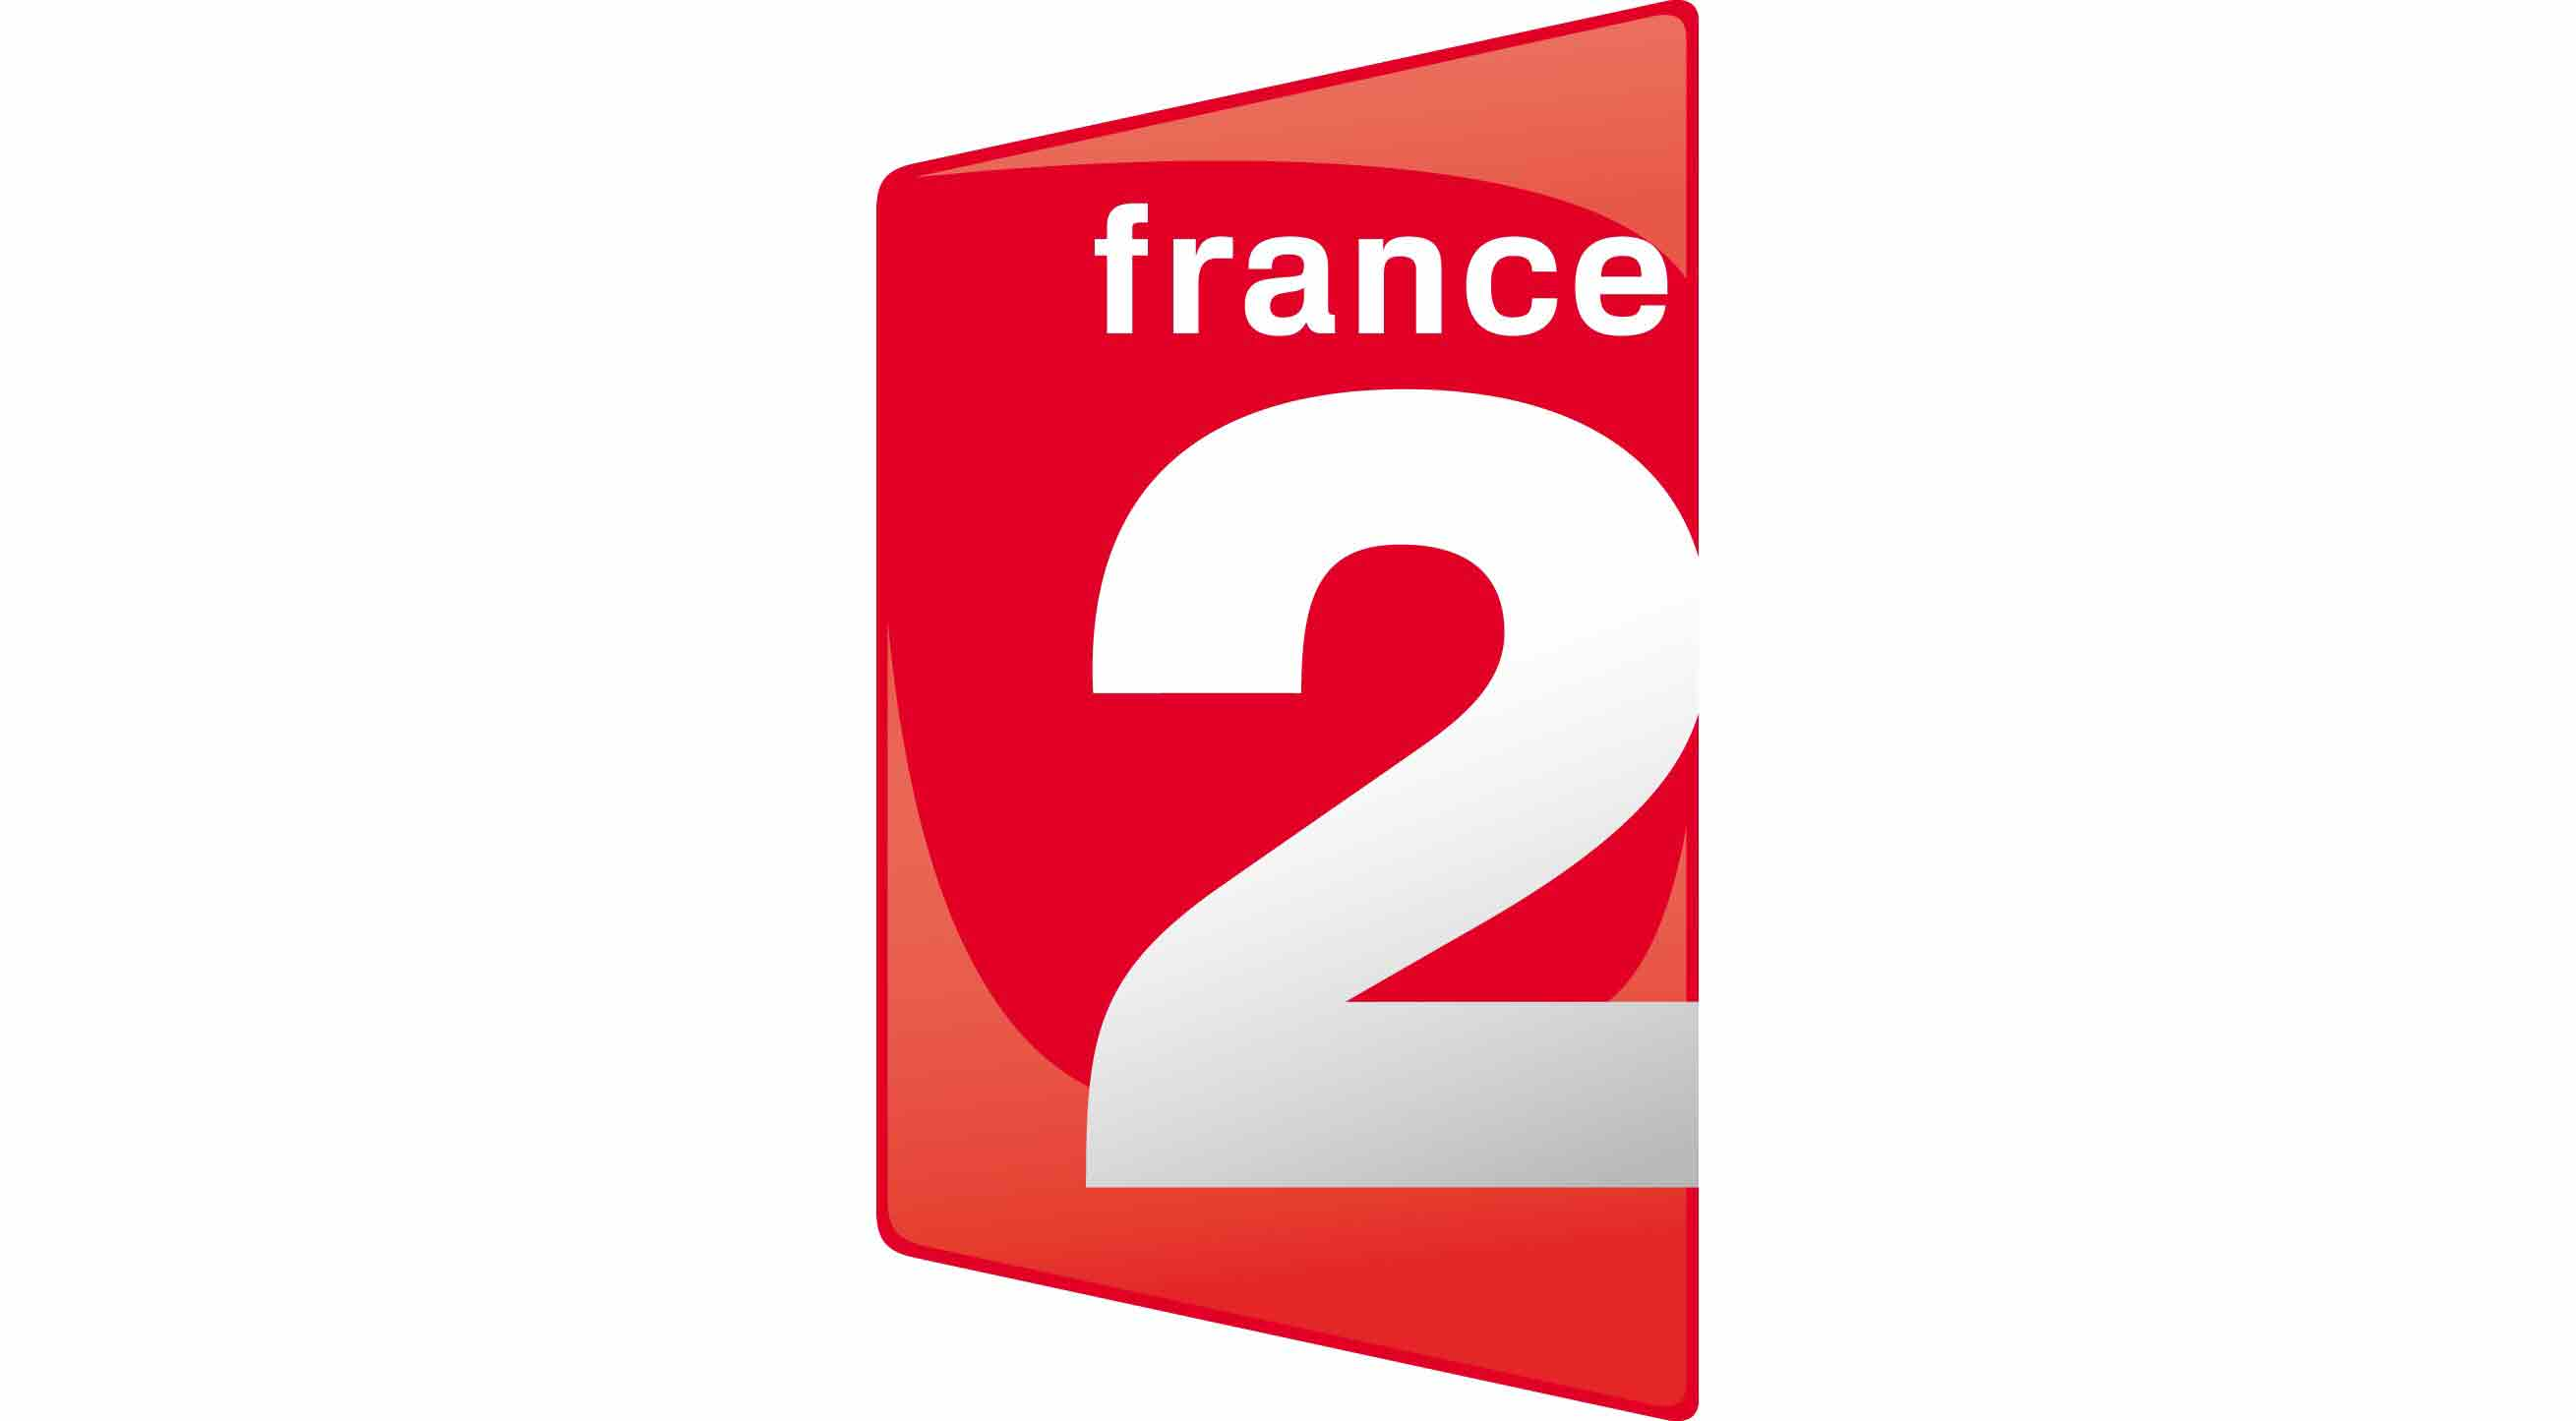 france 2 en direct tv streaming france 2 live. Black Bedroom Furniture Sets. Home Design Ideas